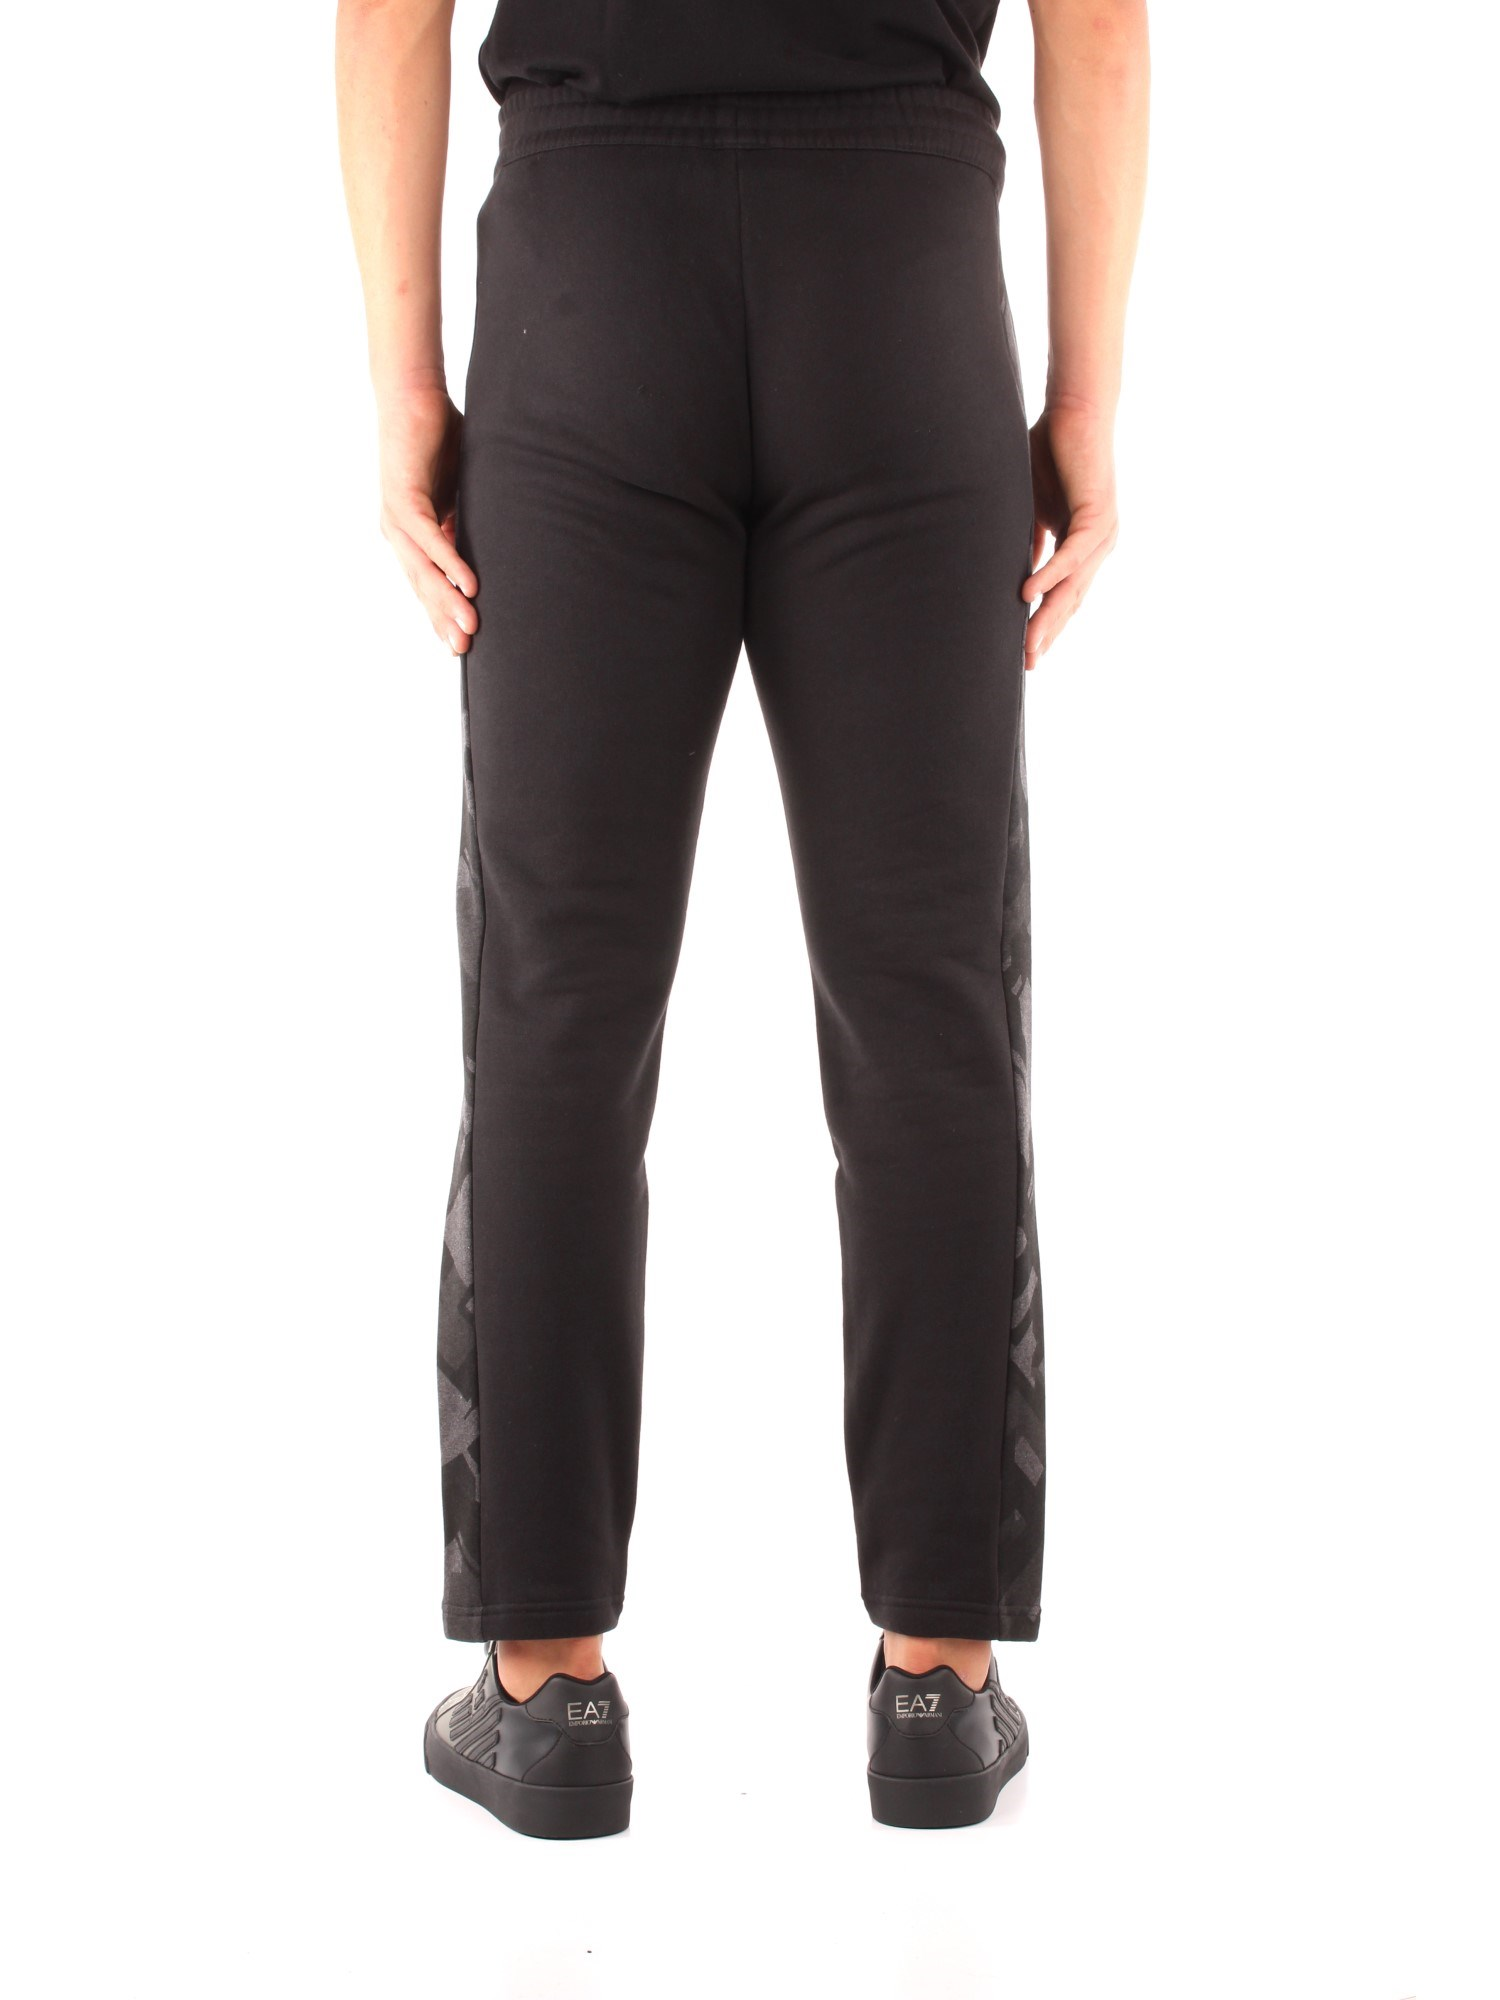 Ea7 Clothing Man Chino BLACK 6GPP60